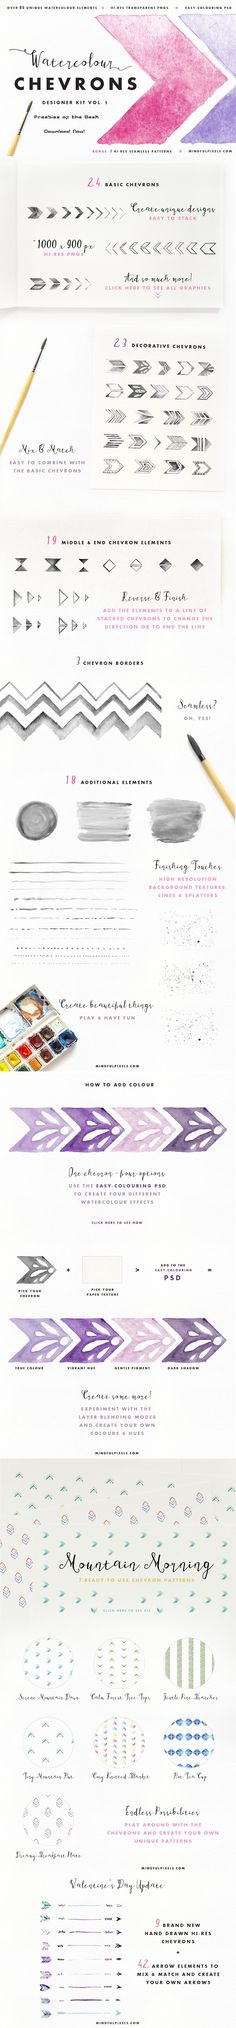 Here we go again with something brand new and perfectly splendid: #Watercolour #Chevrons! Use the chevrons on their own or combine them to create unique borders and patterns. Add splatters, add lines - make the most of the pack using the additional elements for finished look. The Watercolour Chevrons are perfect for invites, greeting cards, weddings, stationary, websites and so much more. #freebies of the week. #design #download